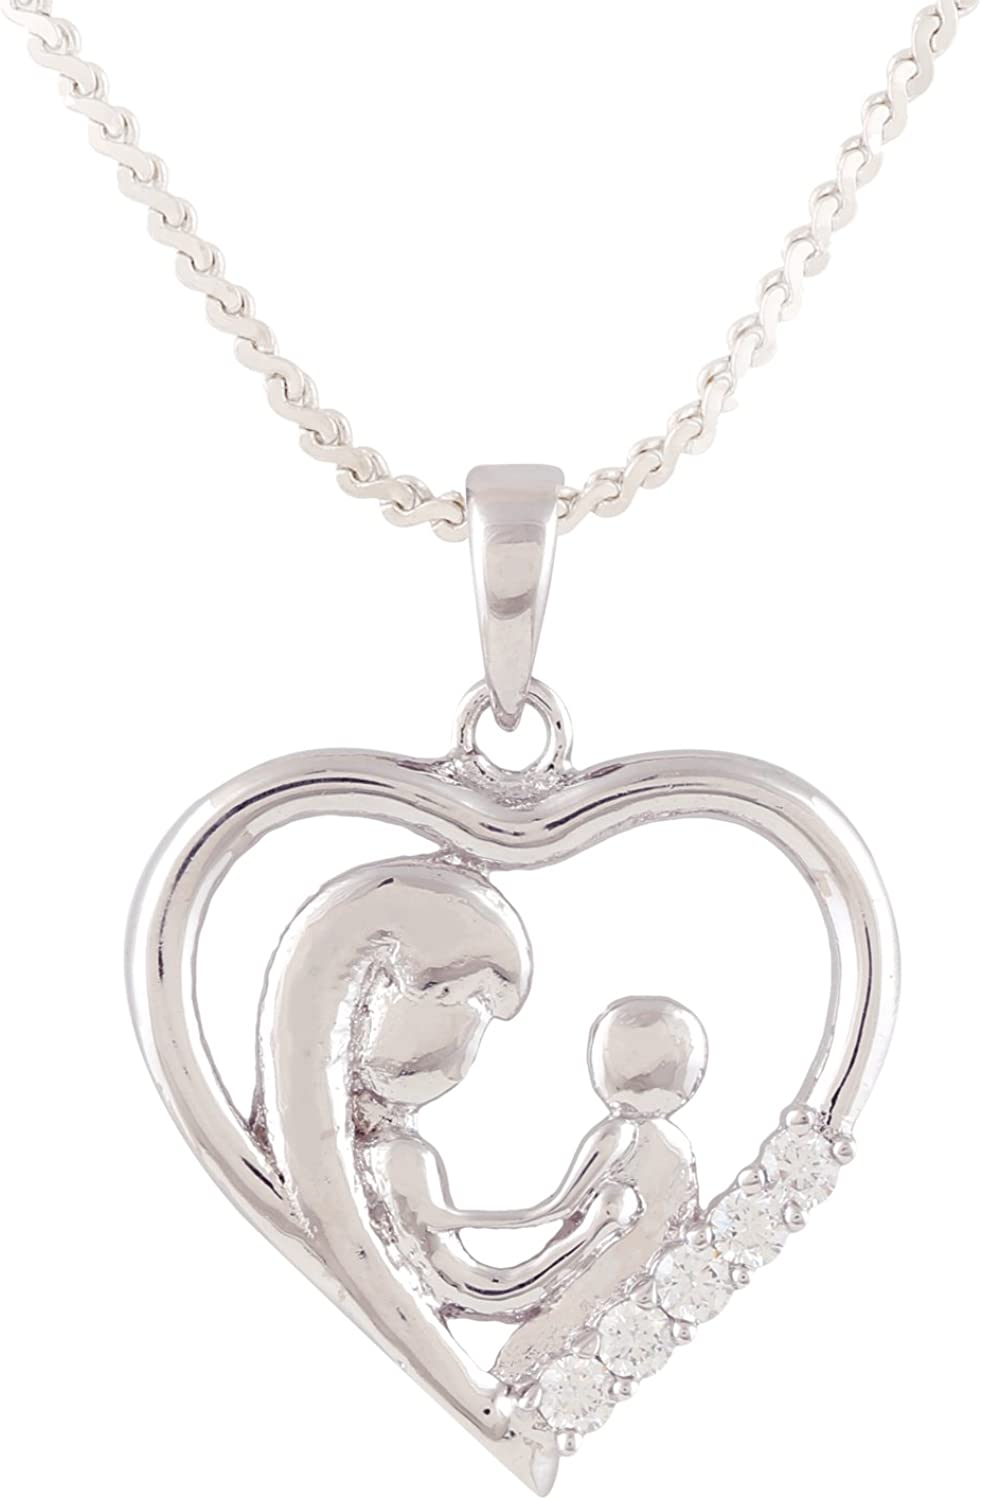 Ananth Jewels Heart Shaped Mom Kids Pendant Fashion Jewelry Zircon CZ Necklace for Women